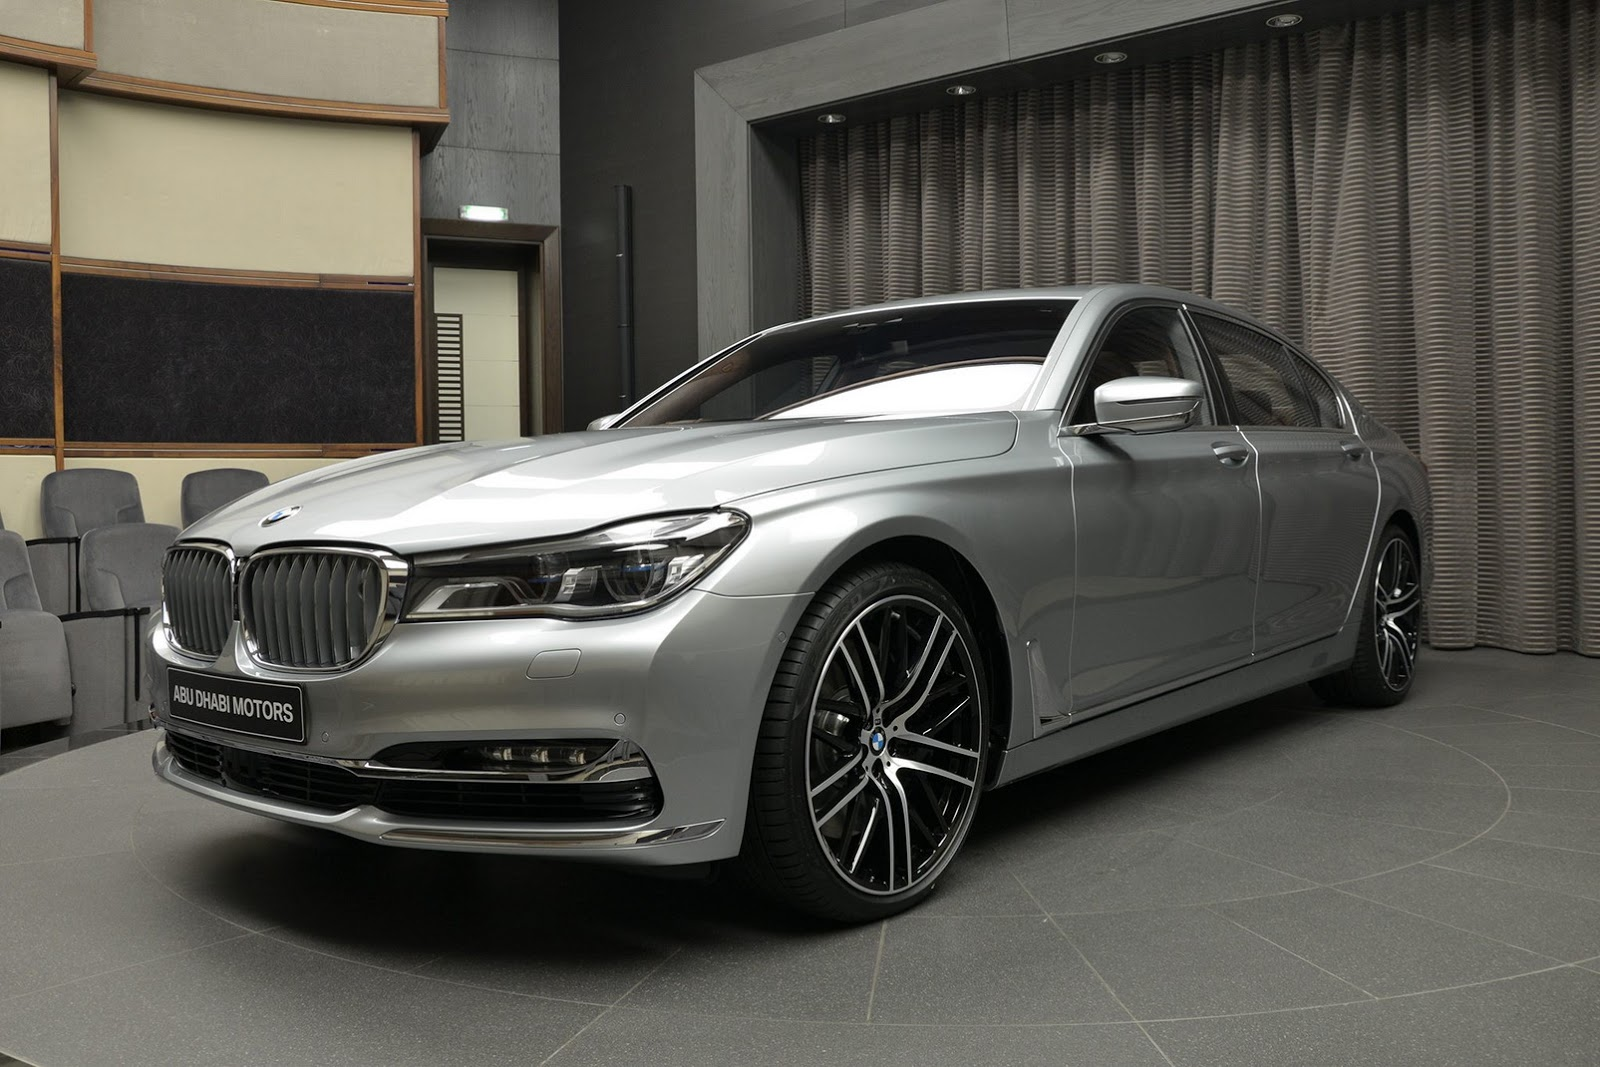 BMW 760Li xDrive V12 Pure Excellence Design (4)